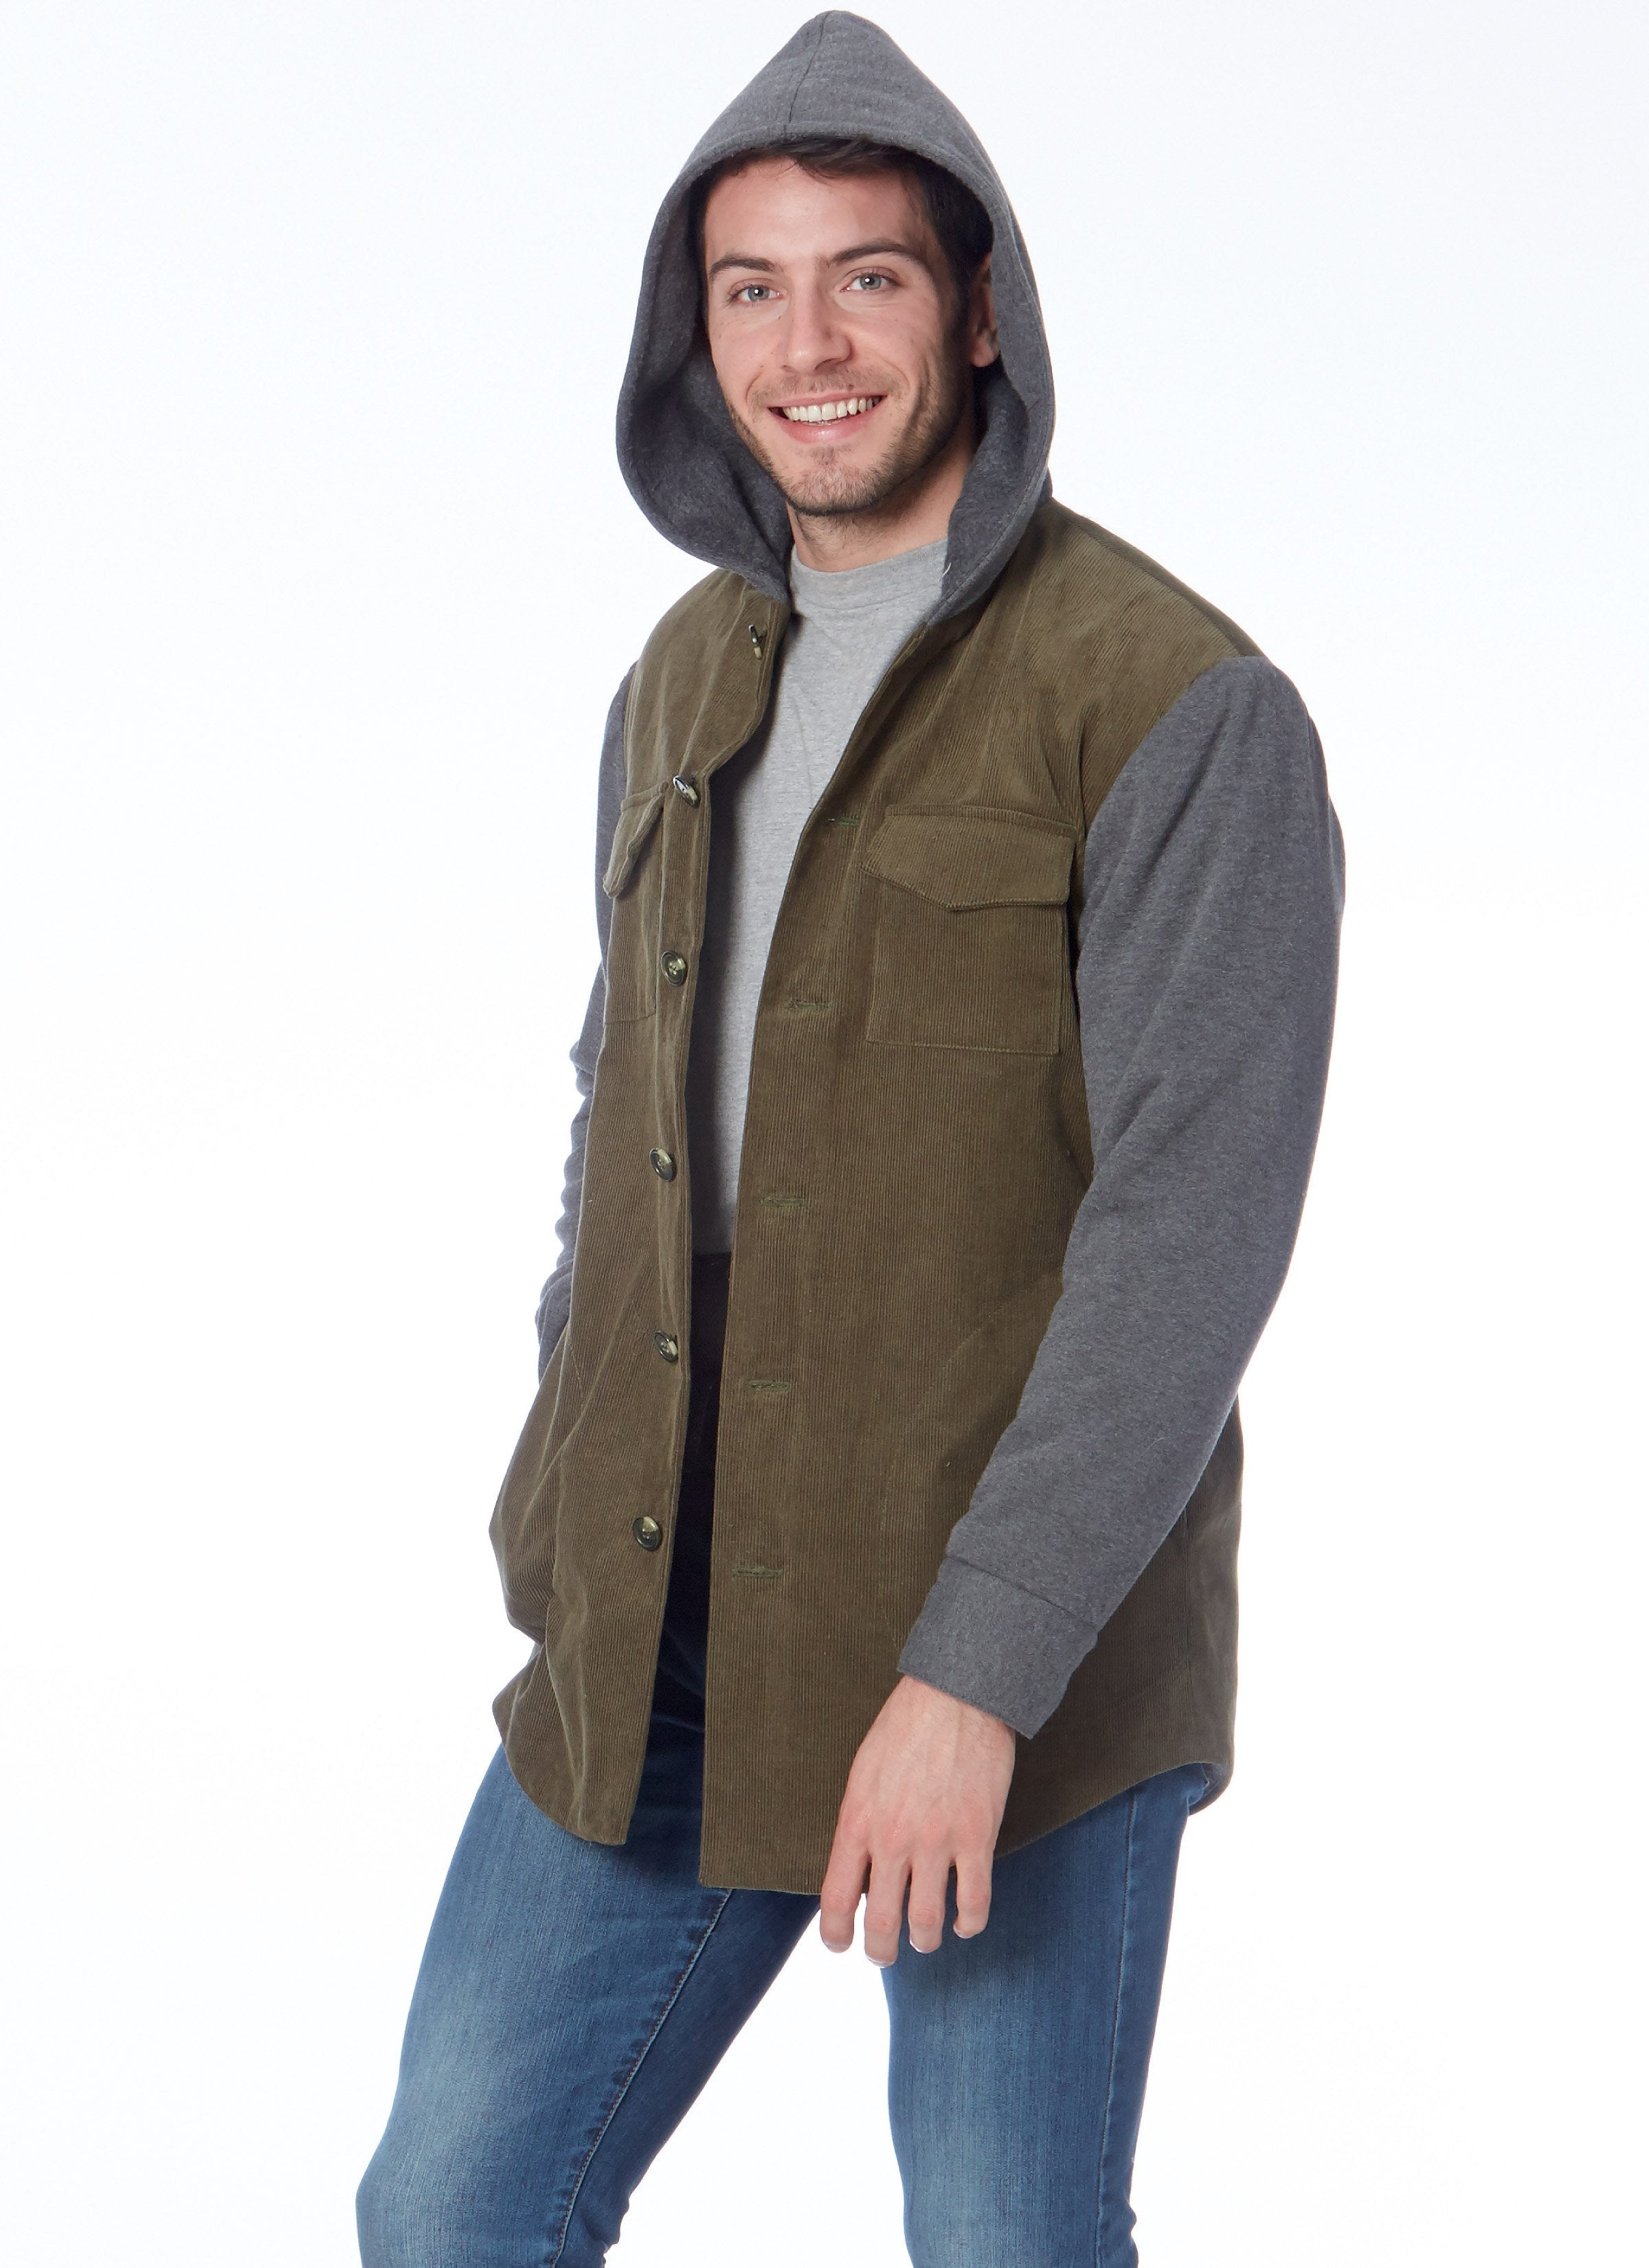 M7638 Mens / Boys Jackets with Hood Options